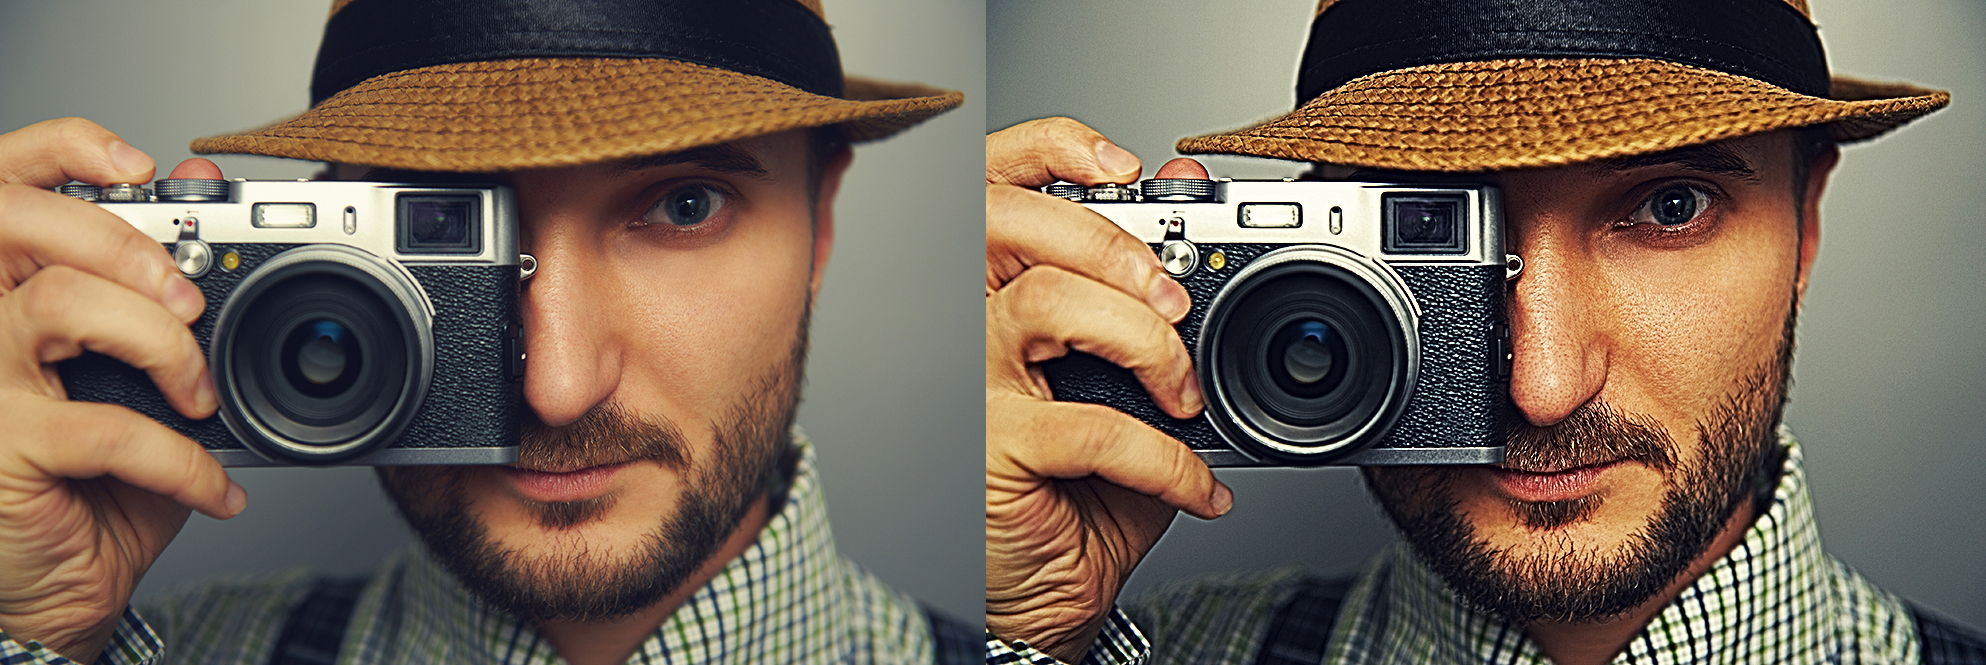 75 HDR Photoshop Actions Collection (Action for photoshop CS5,CS6,CC) example image 2